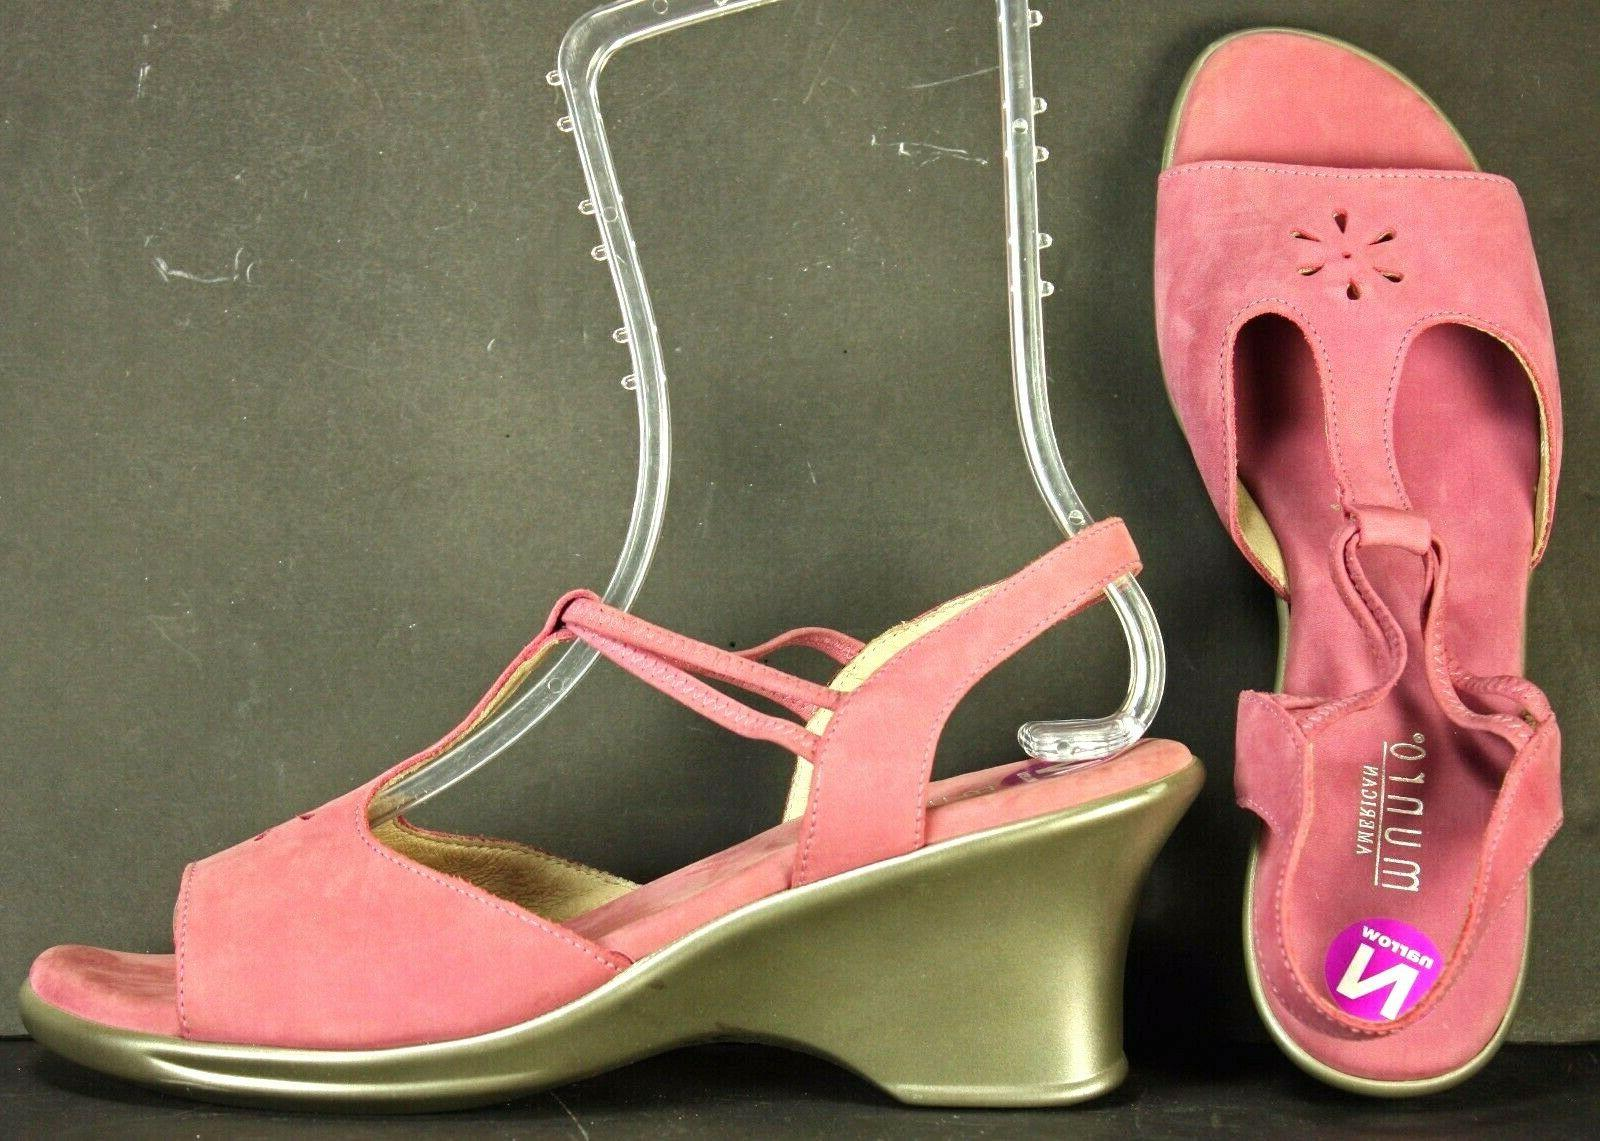 sandals size 9 n pink nubuck leather